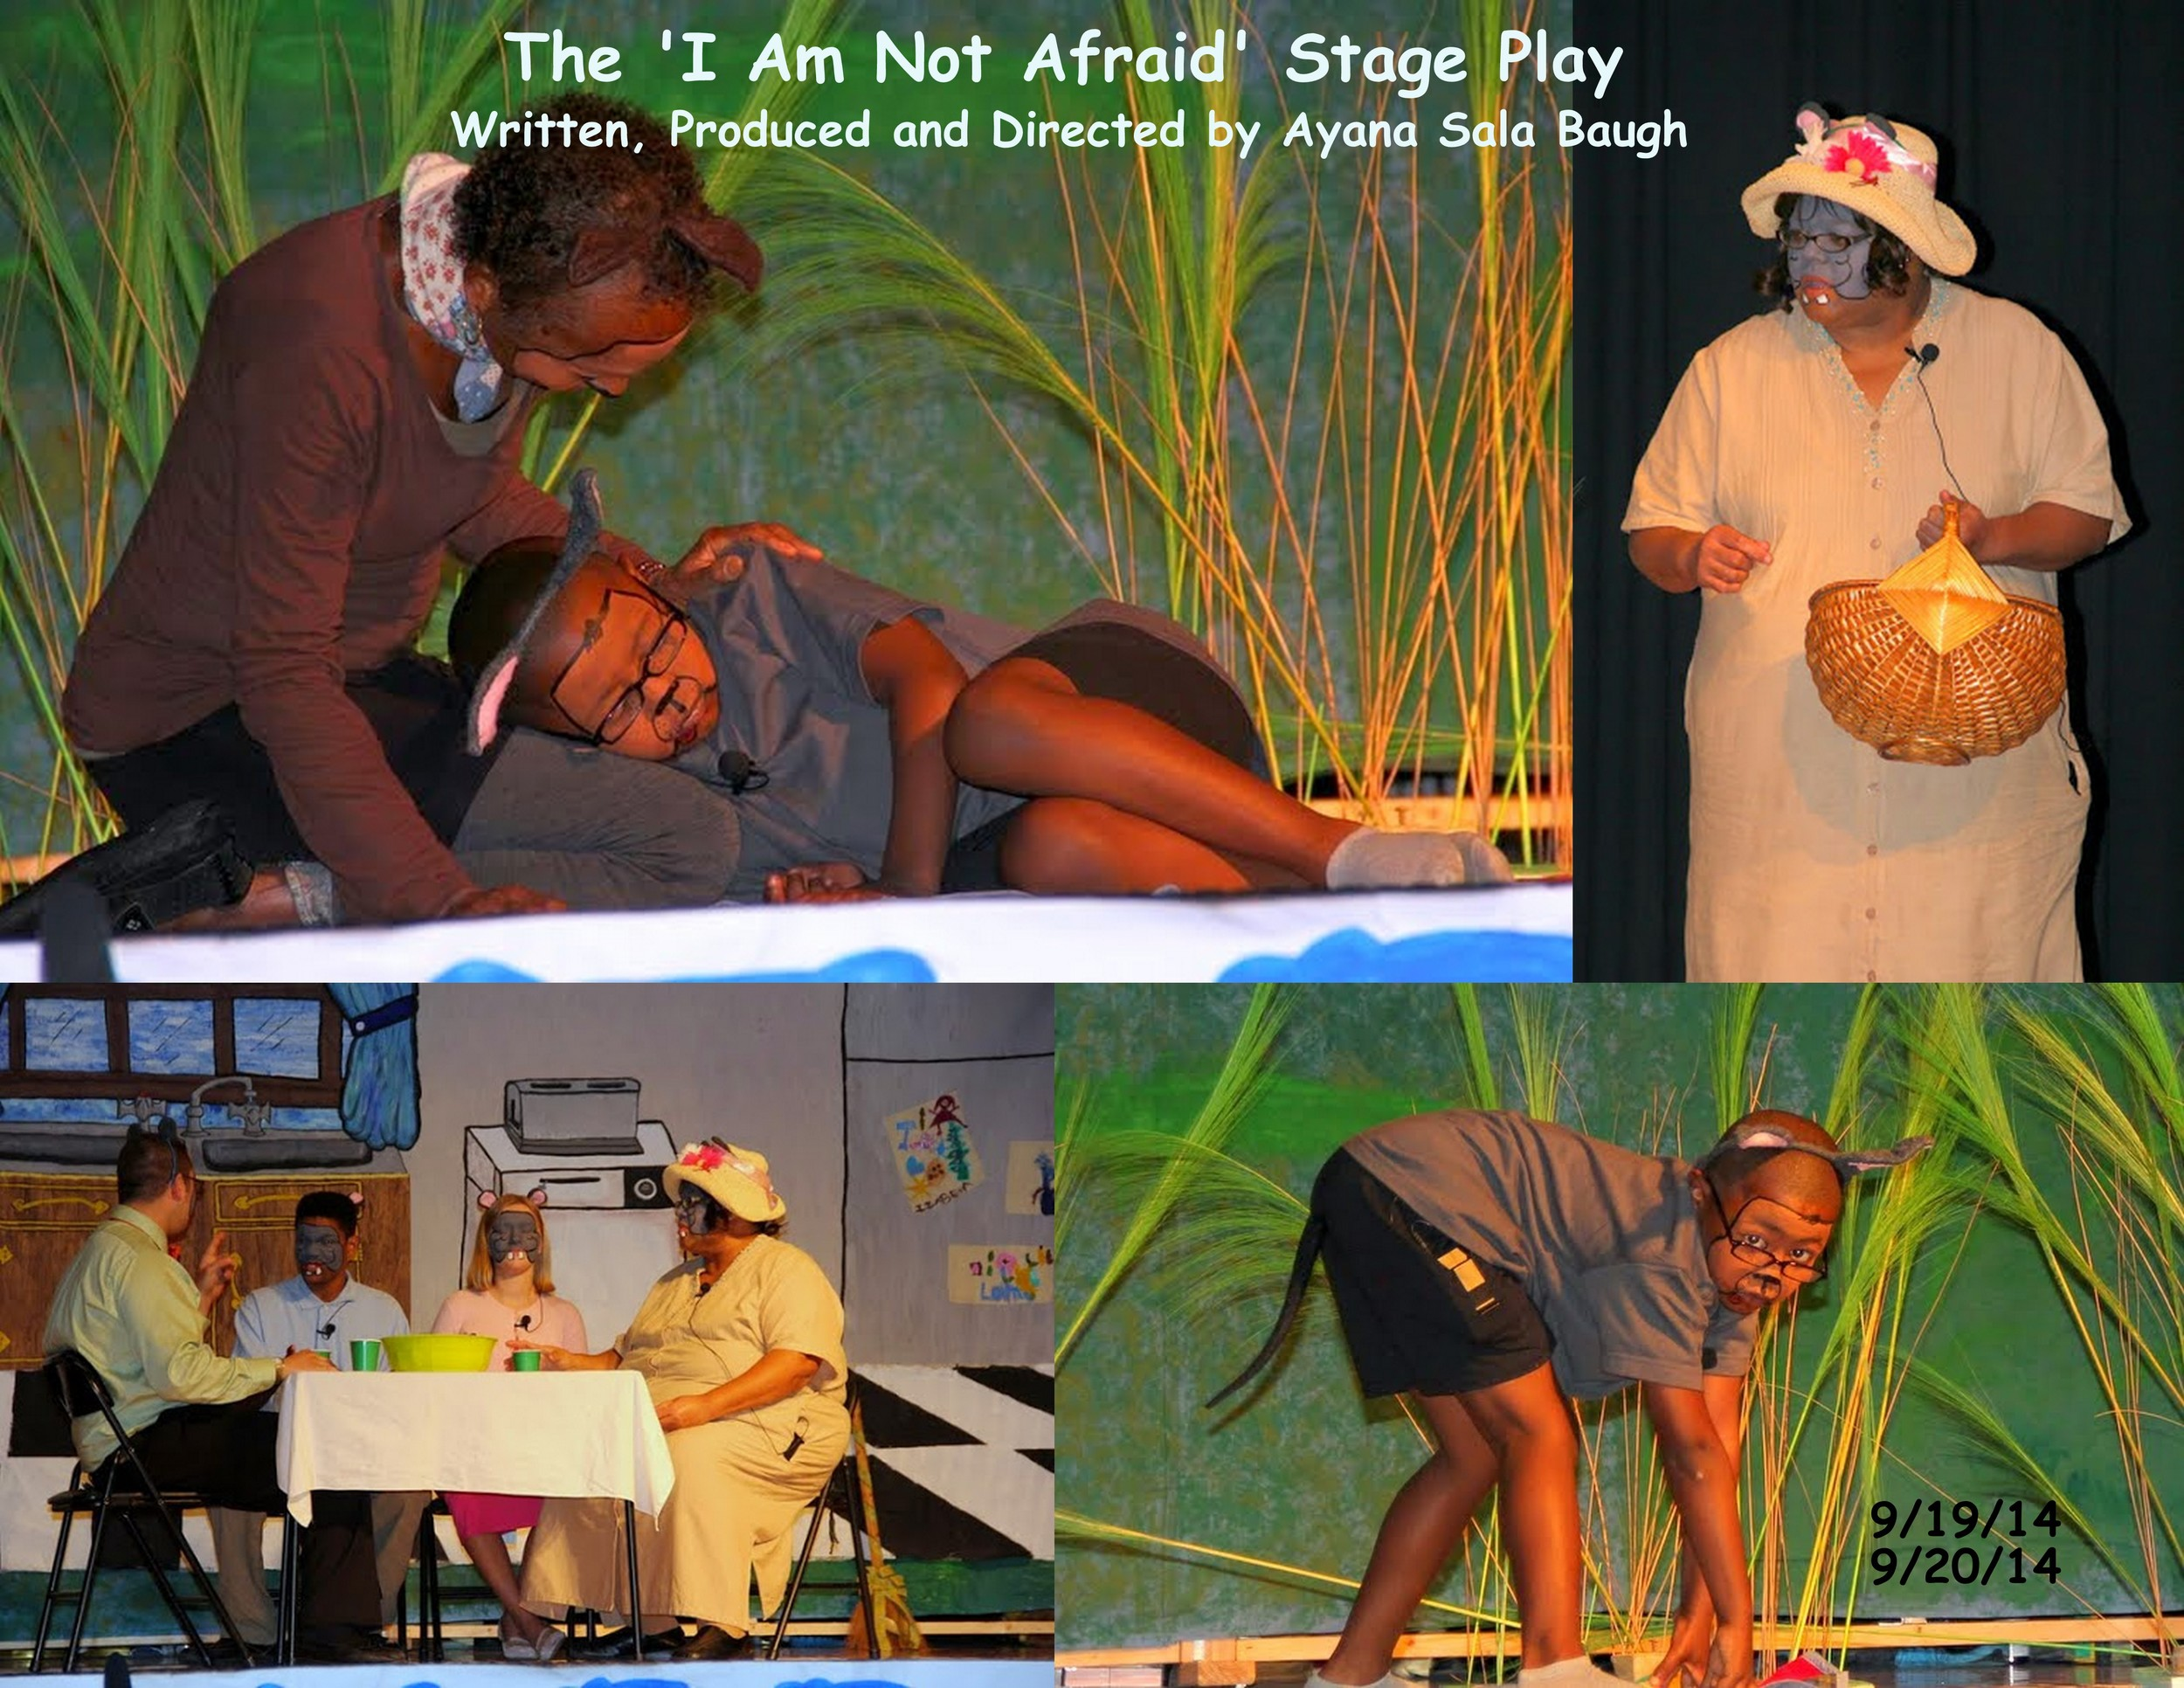 I Am Not Afraid Stage Play Pics 091914 and 092014 collage 1.jpg